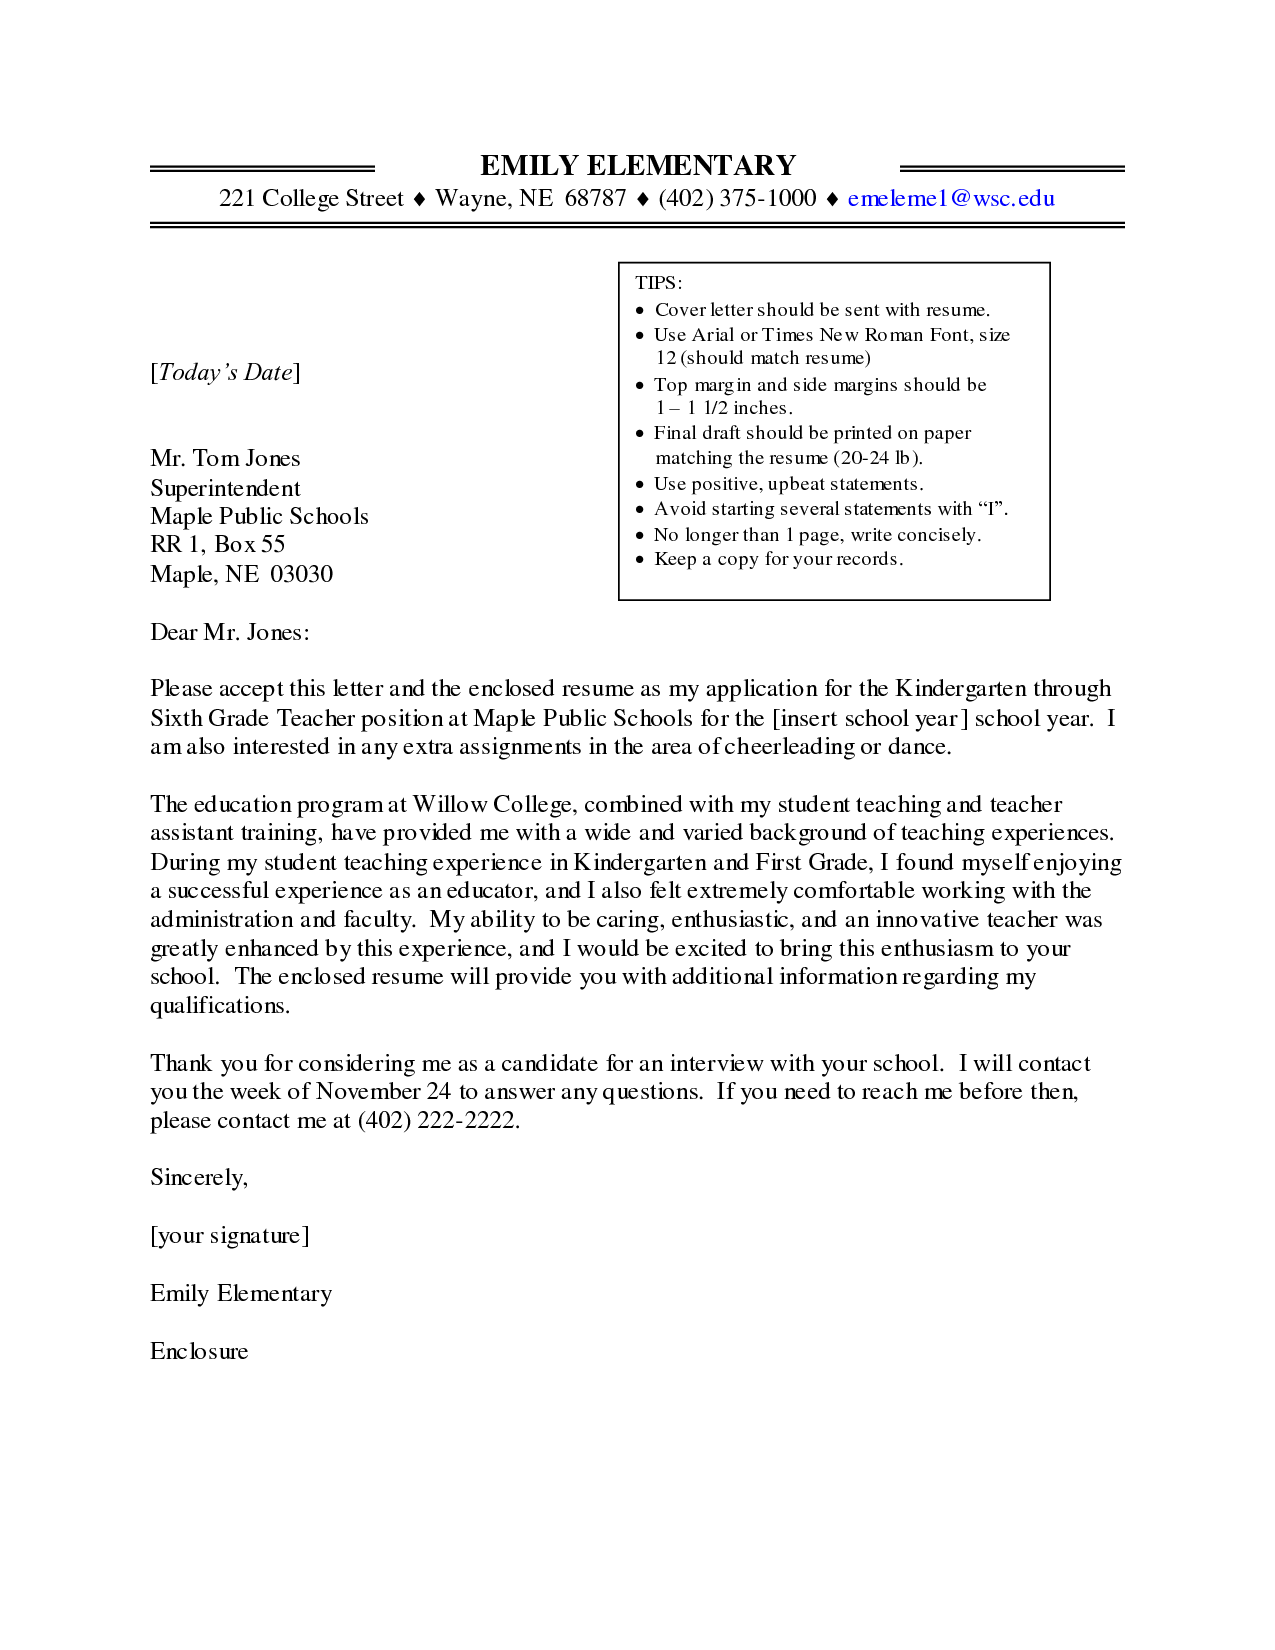 010 Essay Cover Letter Marvelous Sample College Examples Mla Full